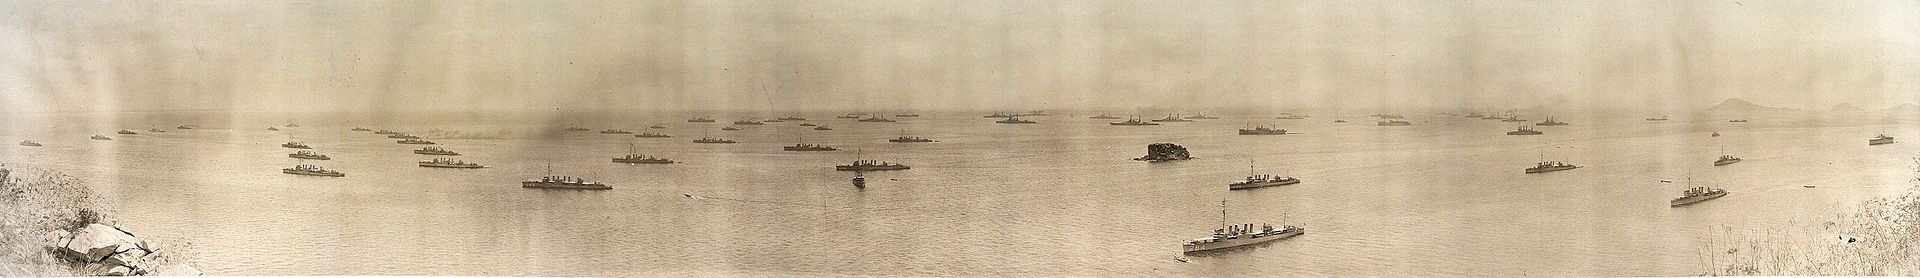 The U.S. fleet off the coast of Panama in 1906. Wikipedia.